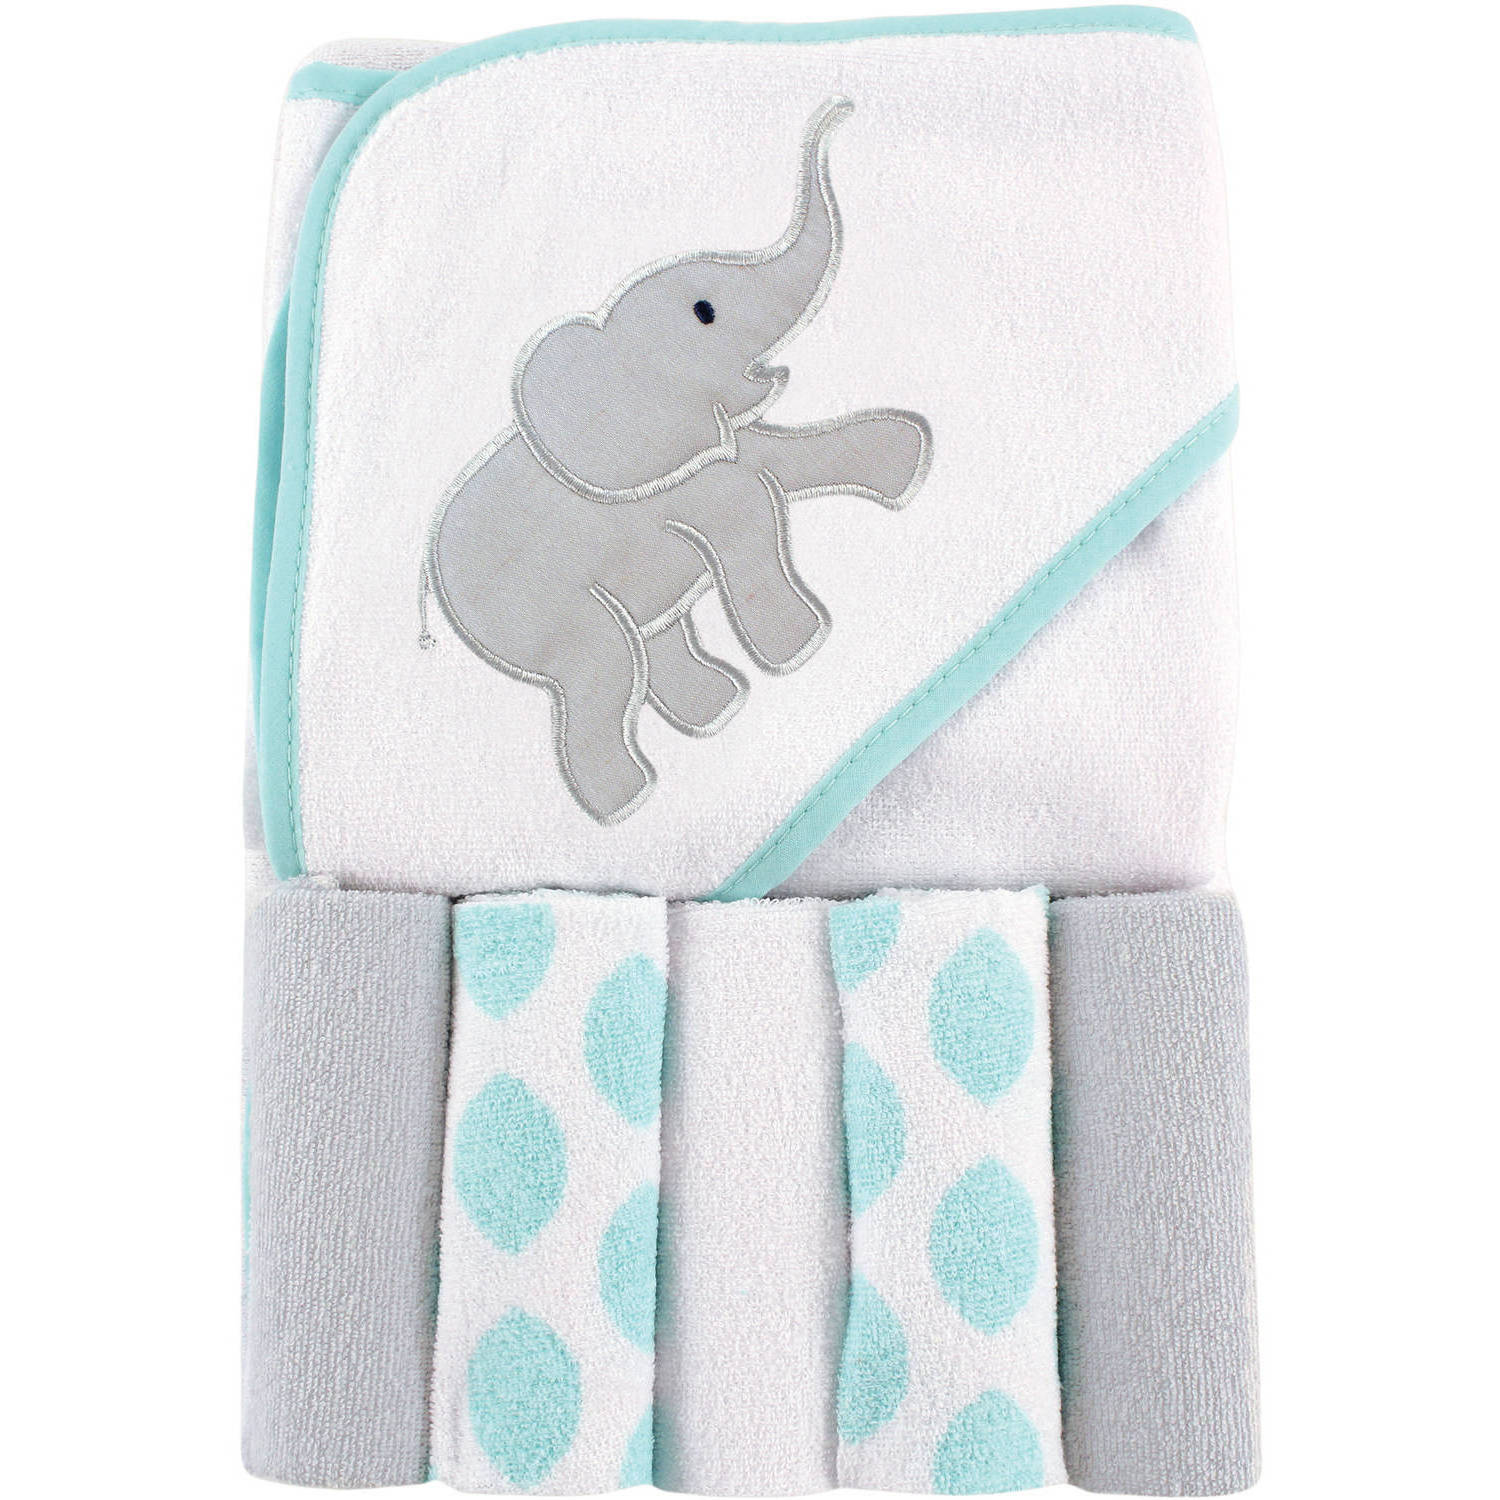 Luvable Friends Baby Hooded Towel with 5 Washcloths, Ikat Elephant